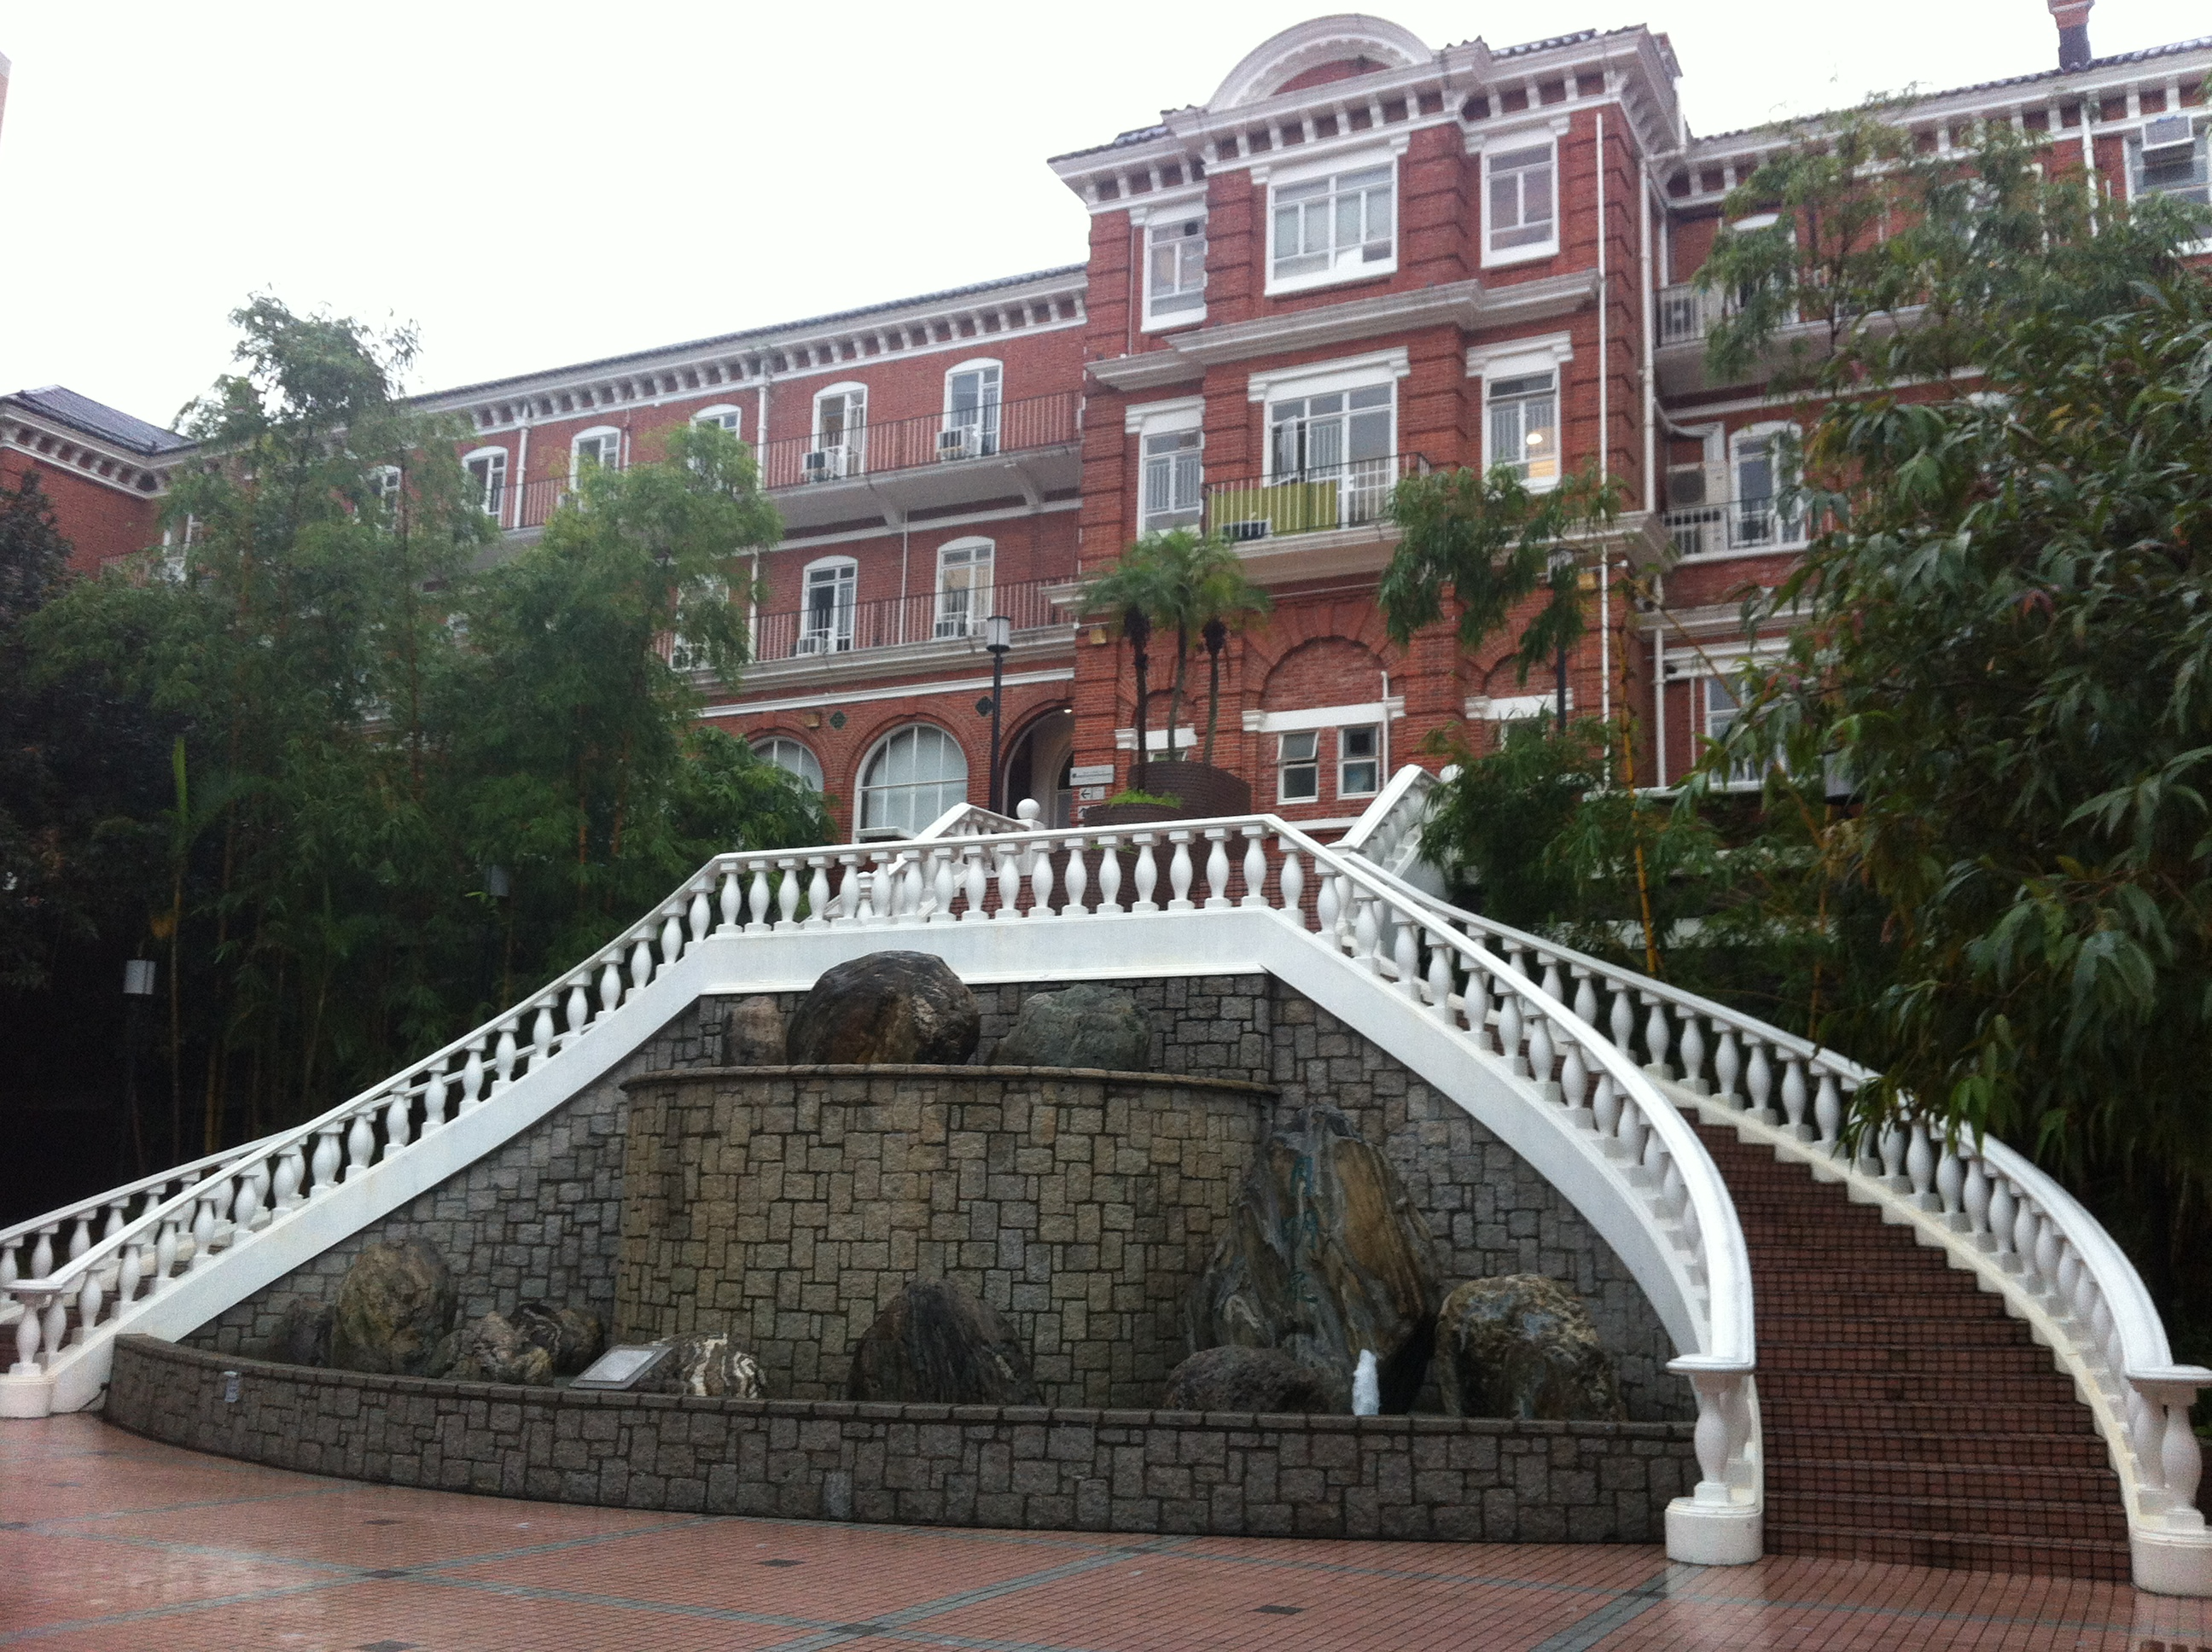 Hong Kong University | Photo by Wilson Carletti (All Rights Reserved)